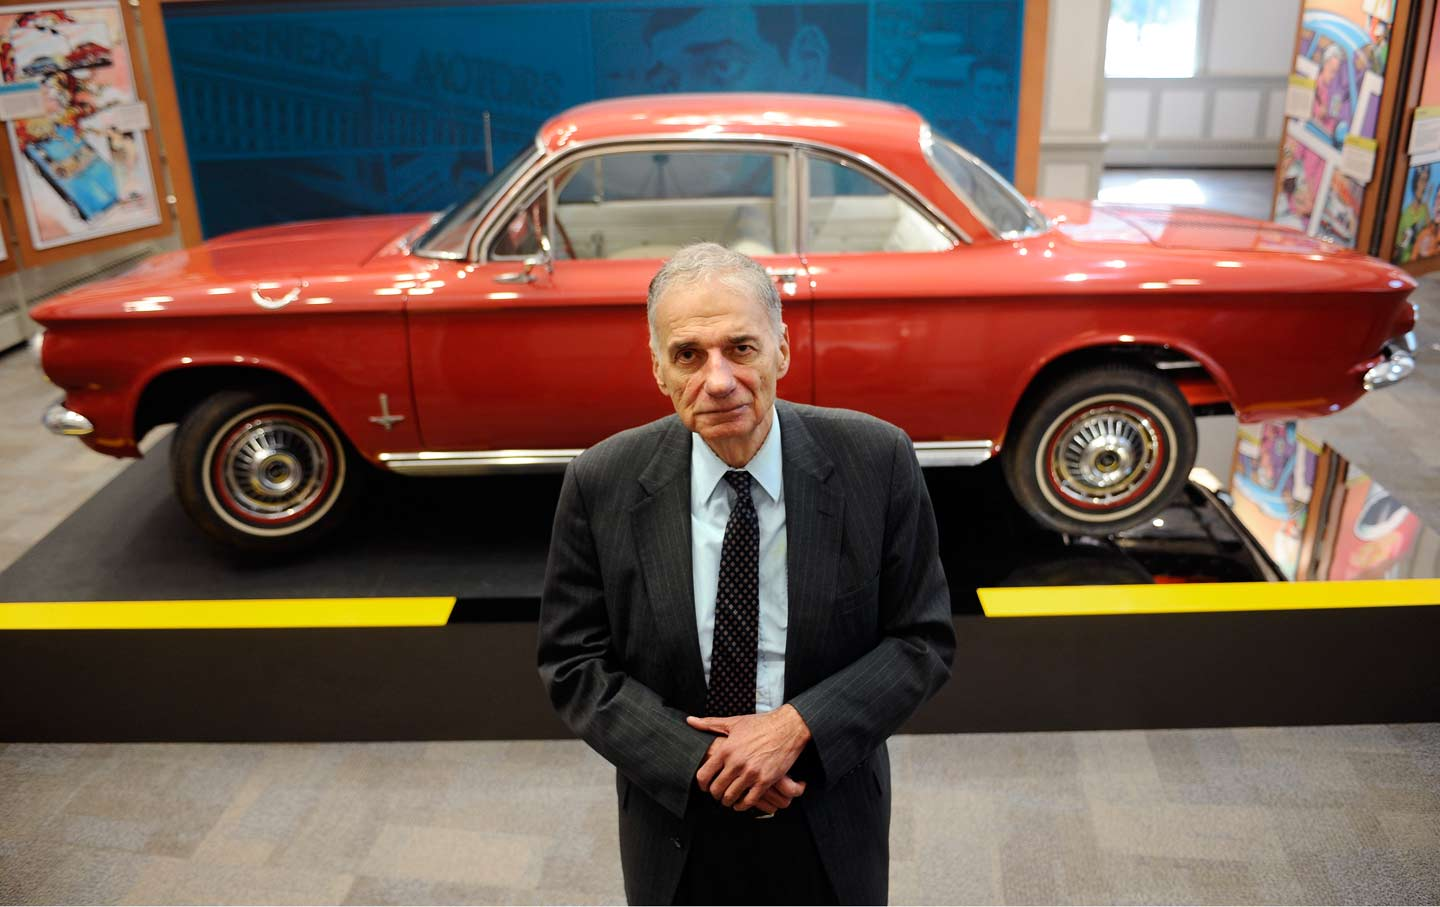 Ralph Nader in front of a Chevy Corvair at the American Museum of Tort Law in Winsted, Connecticut, September 2015.